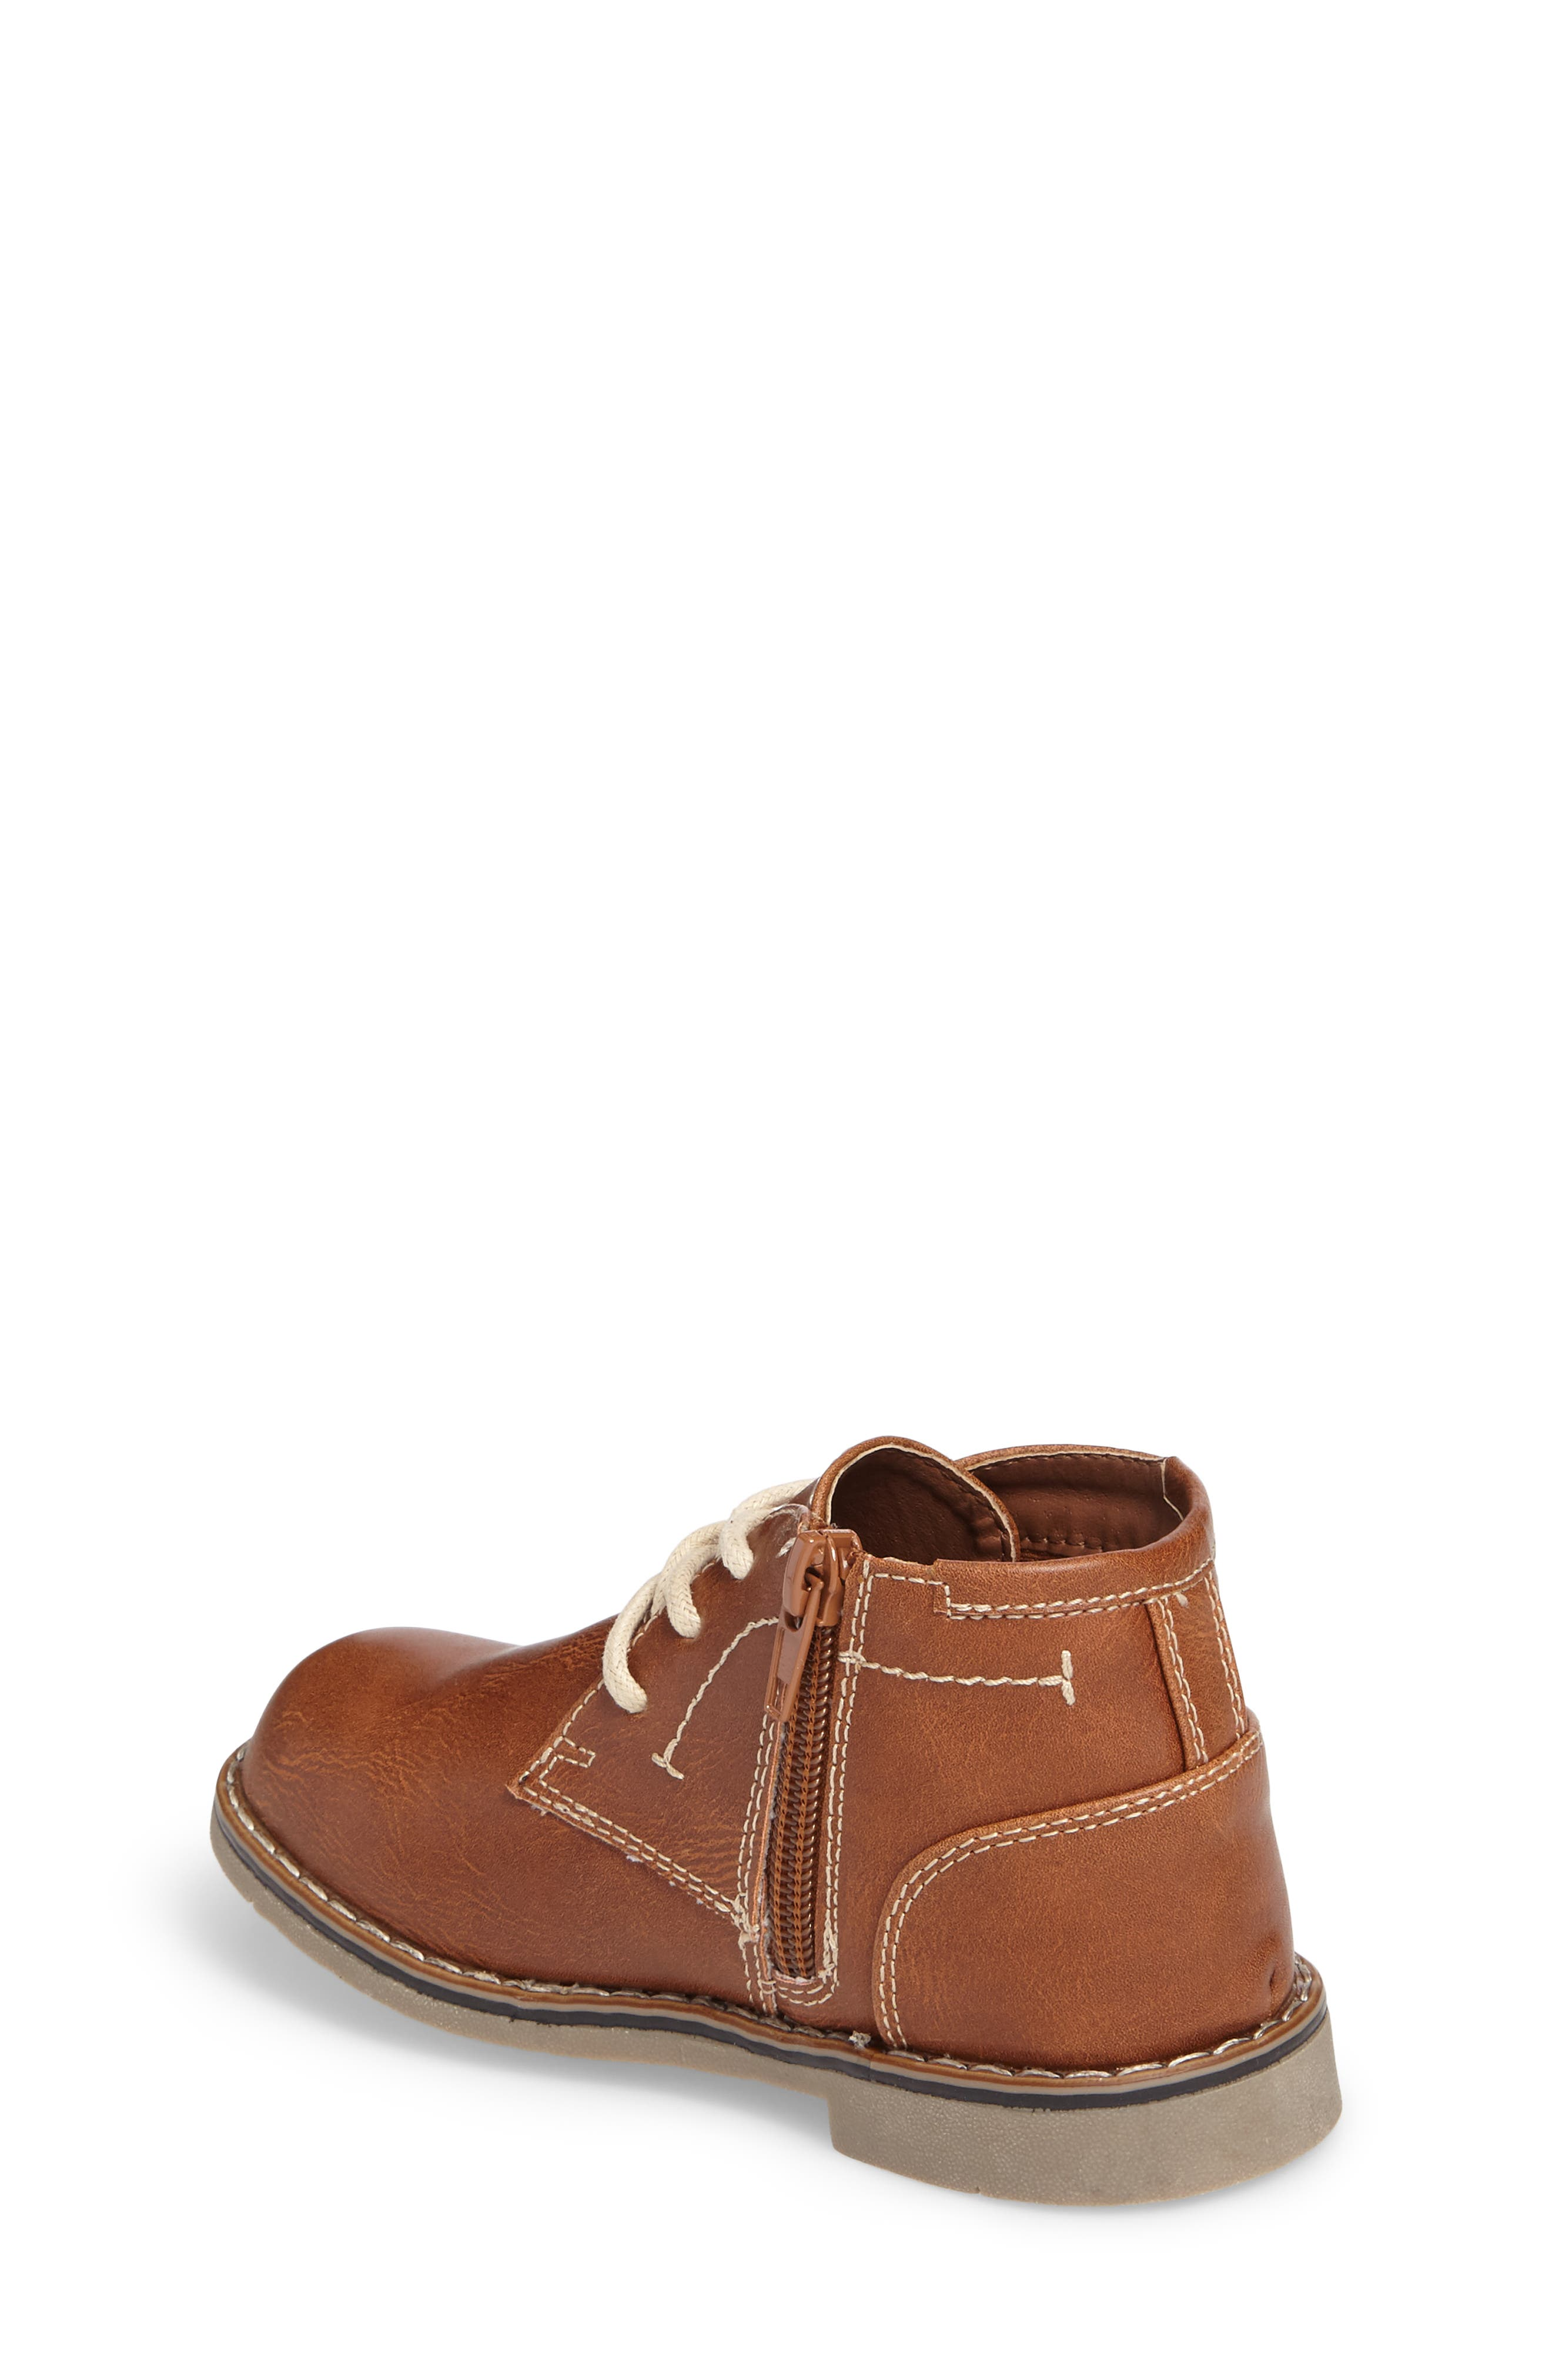 Chukka Boot,                             Alternate thumbnail 2, color,                             Cognac